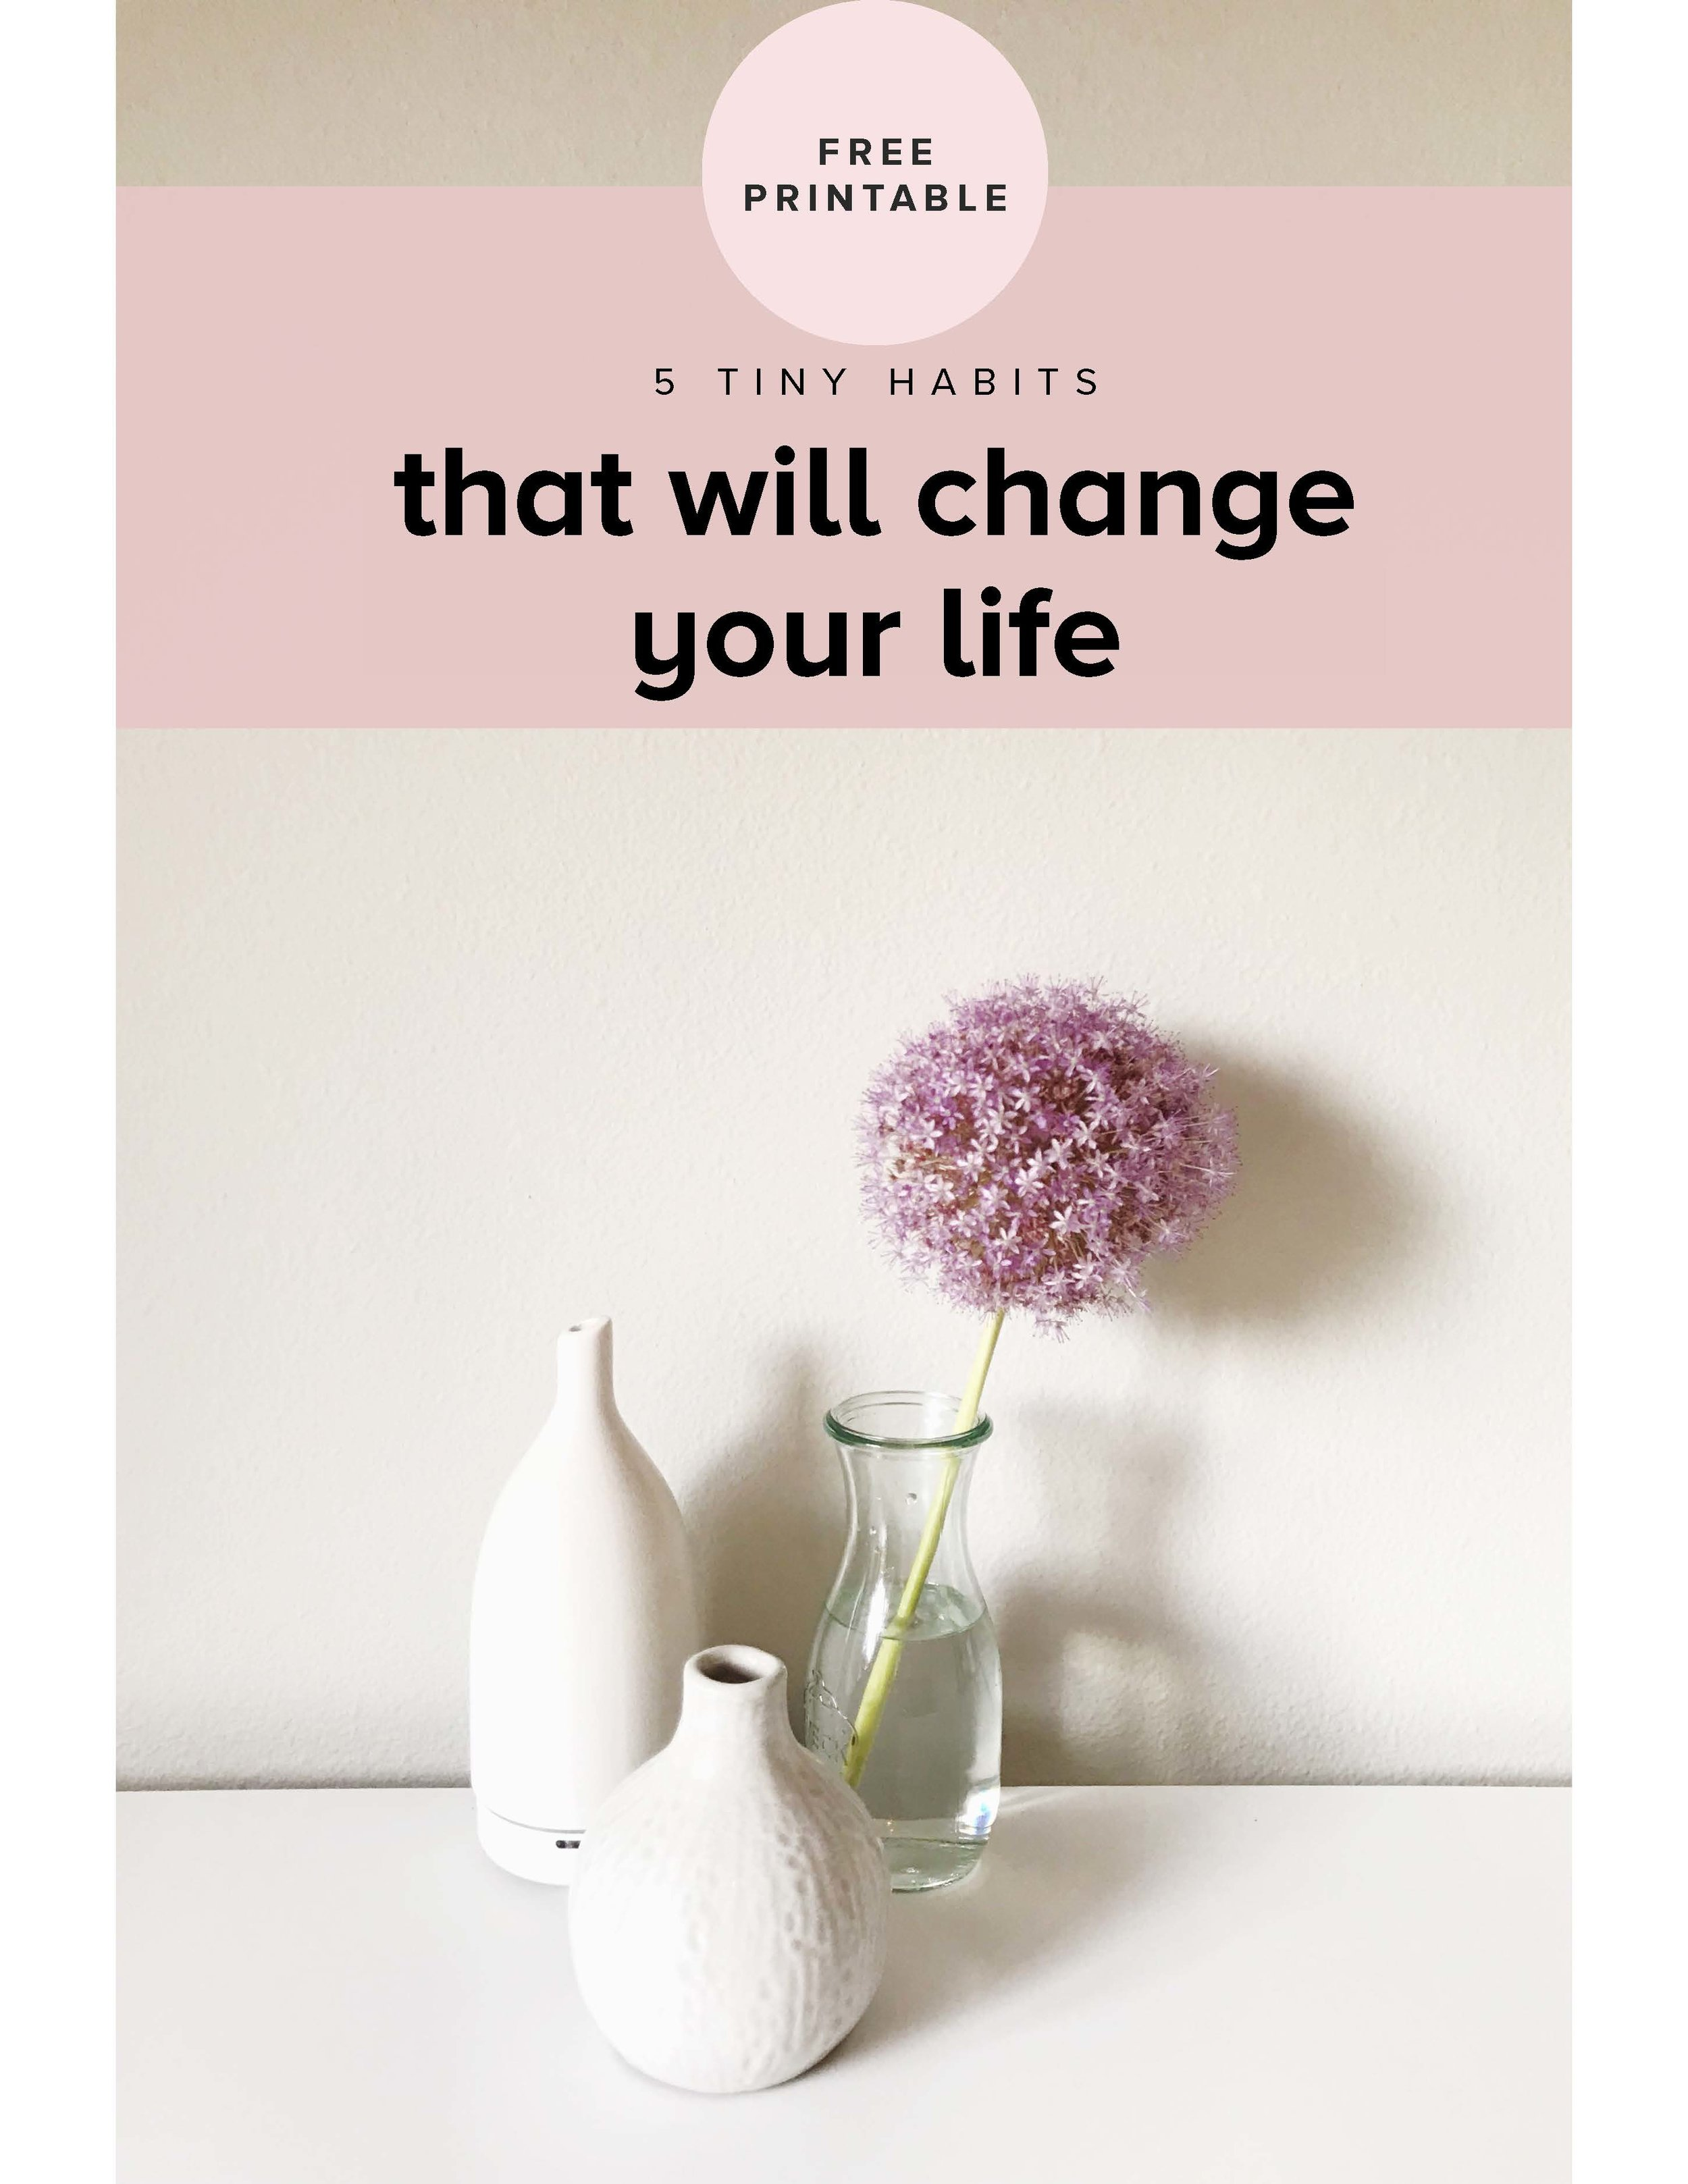 Free Guide: 5 Tiny Changes that Will Change Your Life